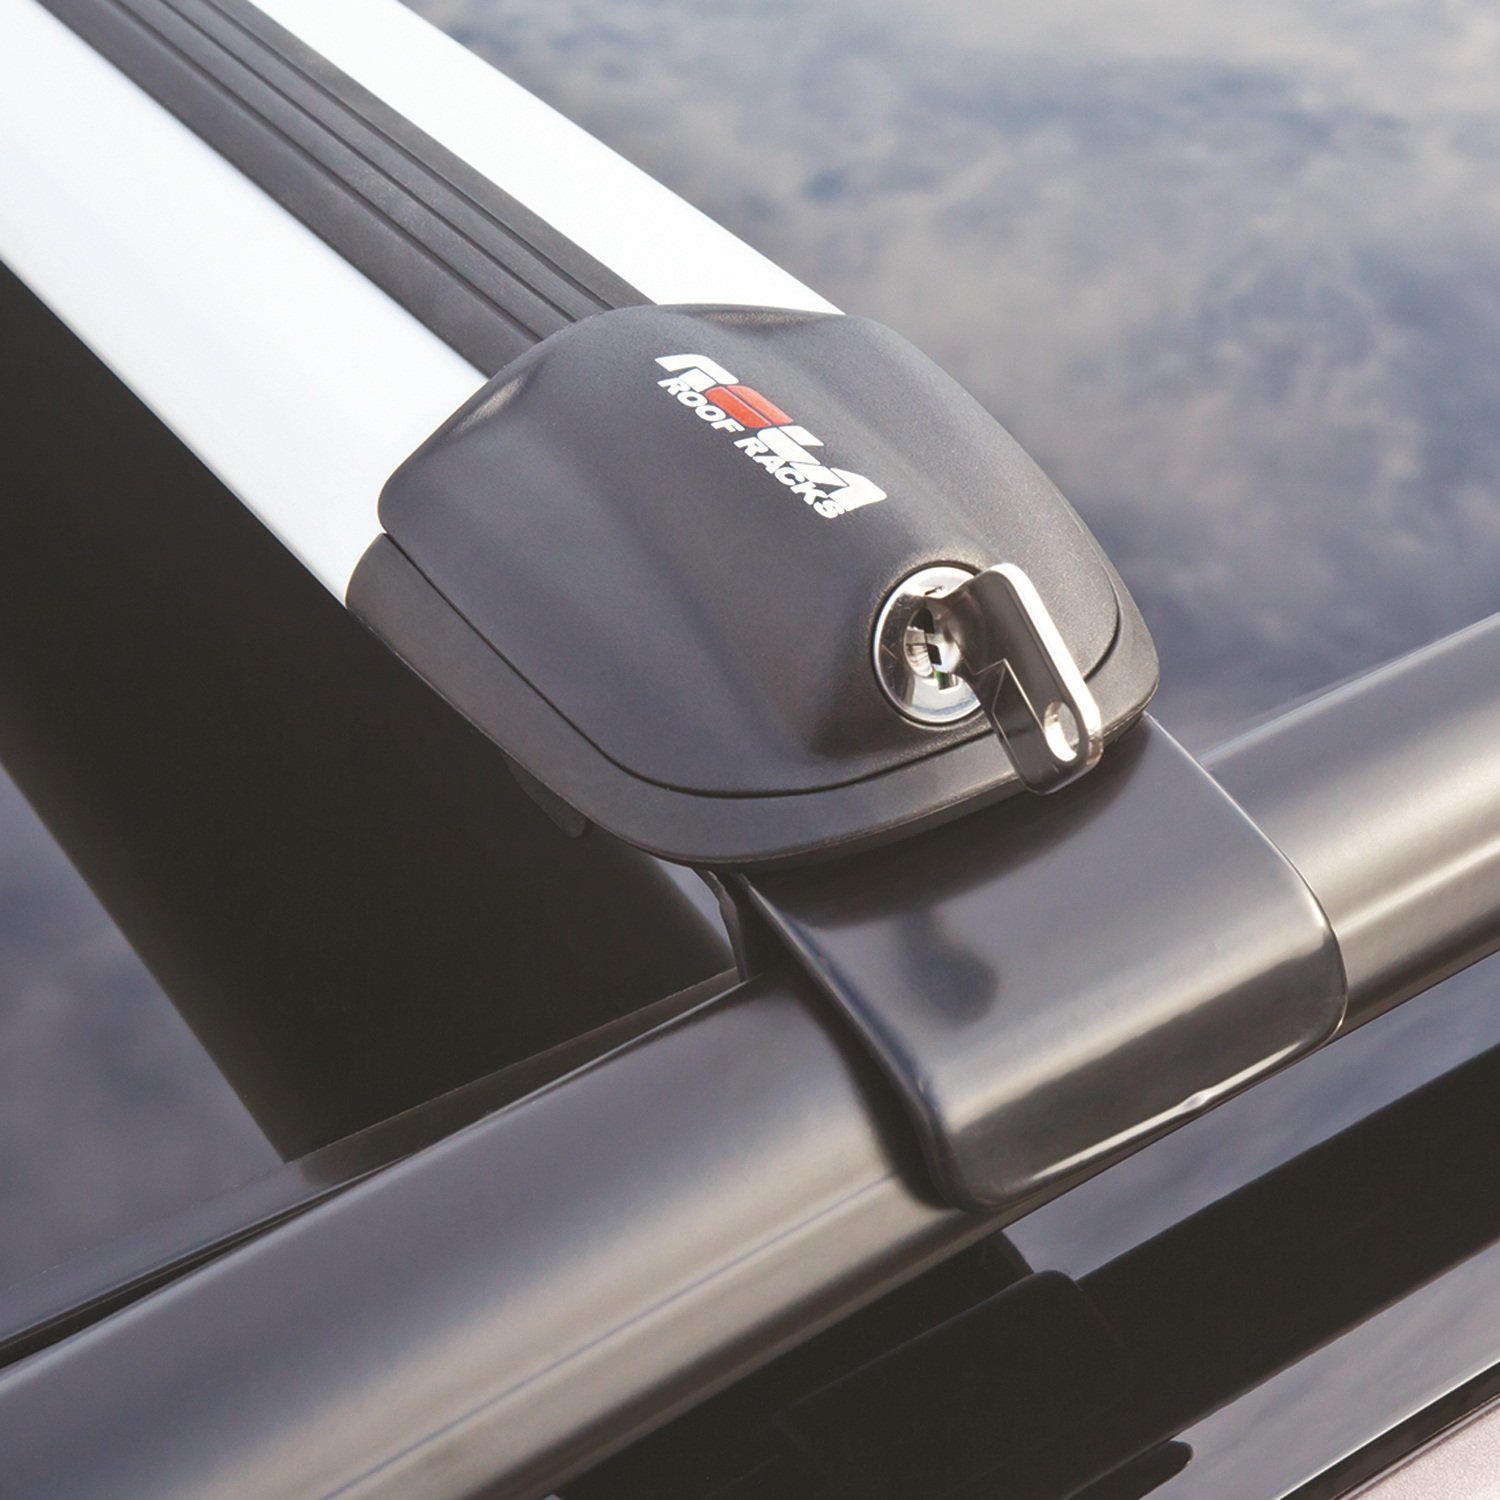 ROLA 59823 Removable Rail Bar RBXL Series Roof Rack for Nissan Murano